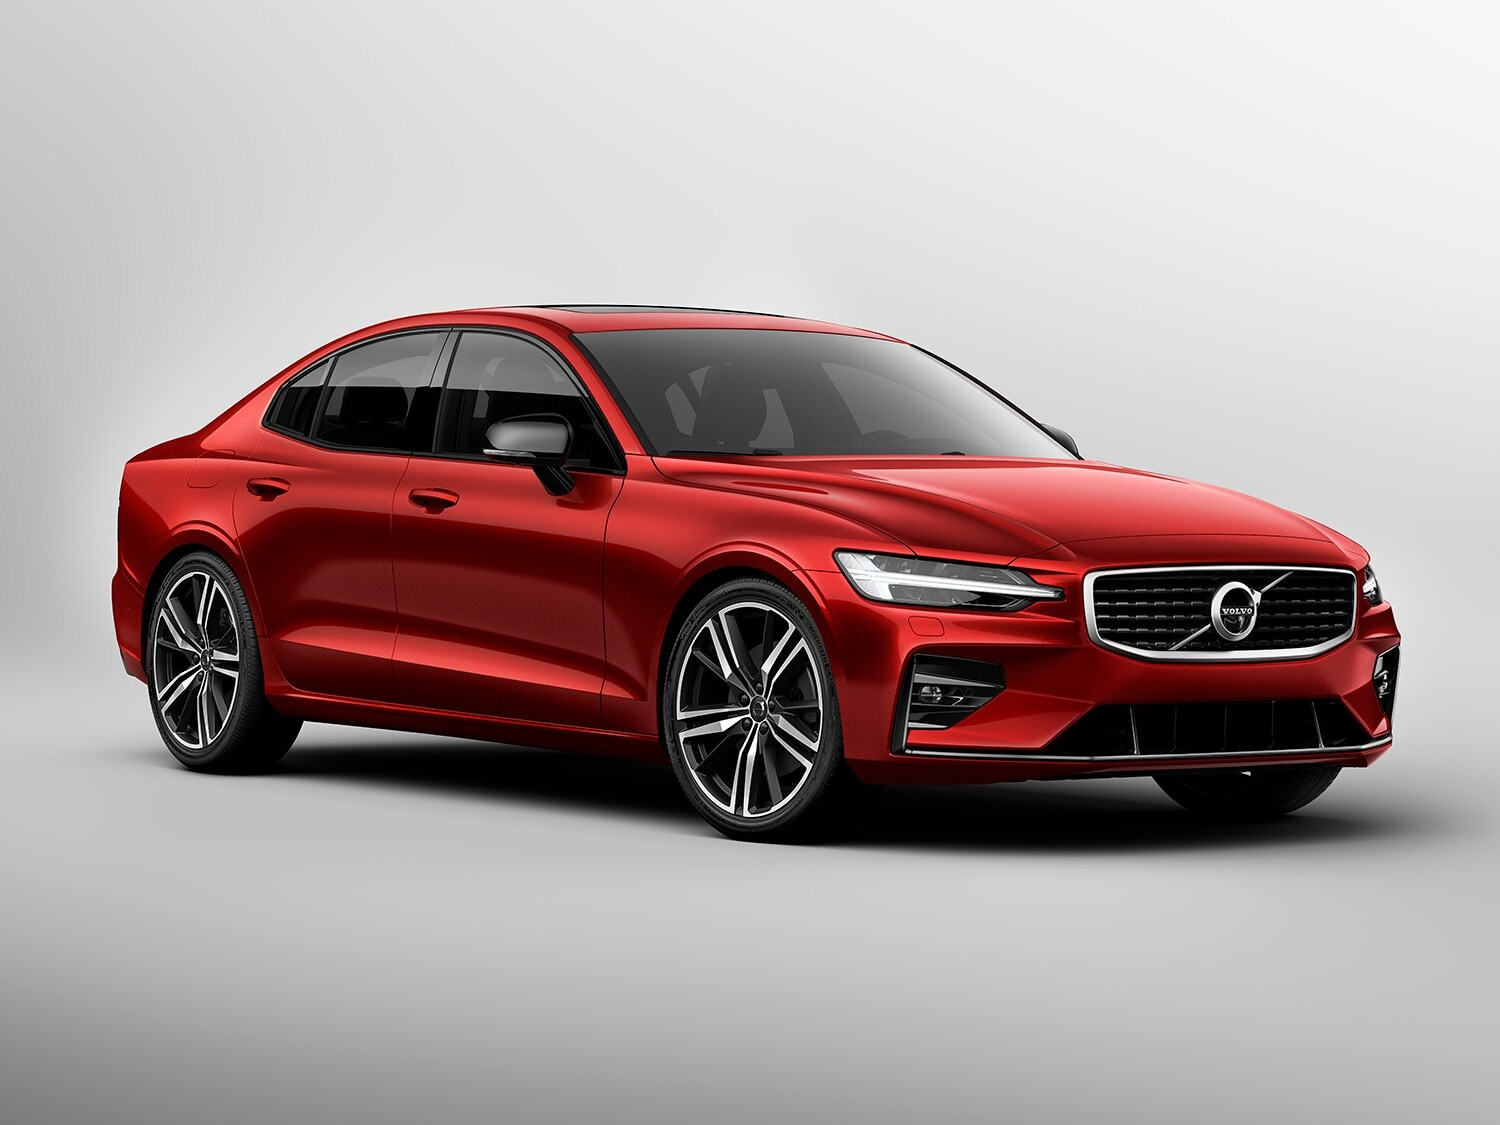 Volvo S60 R-Design trim